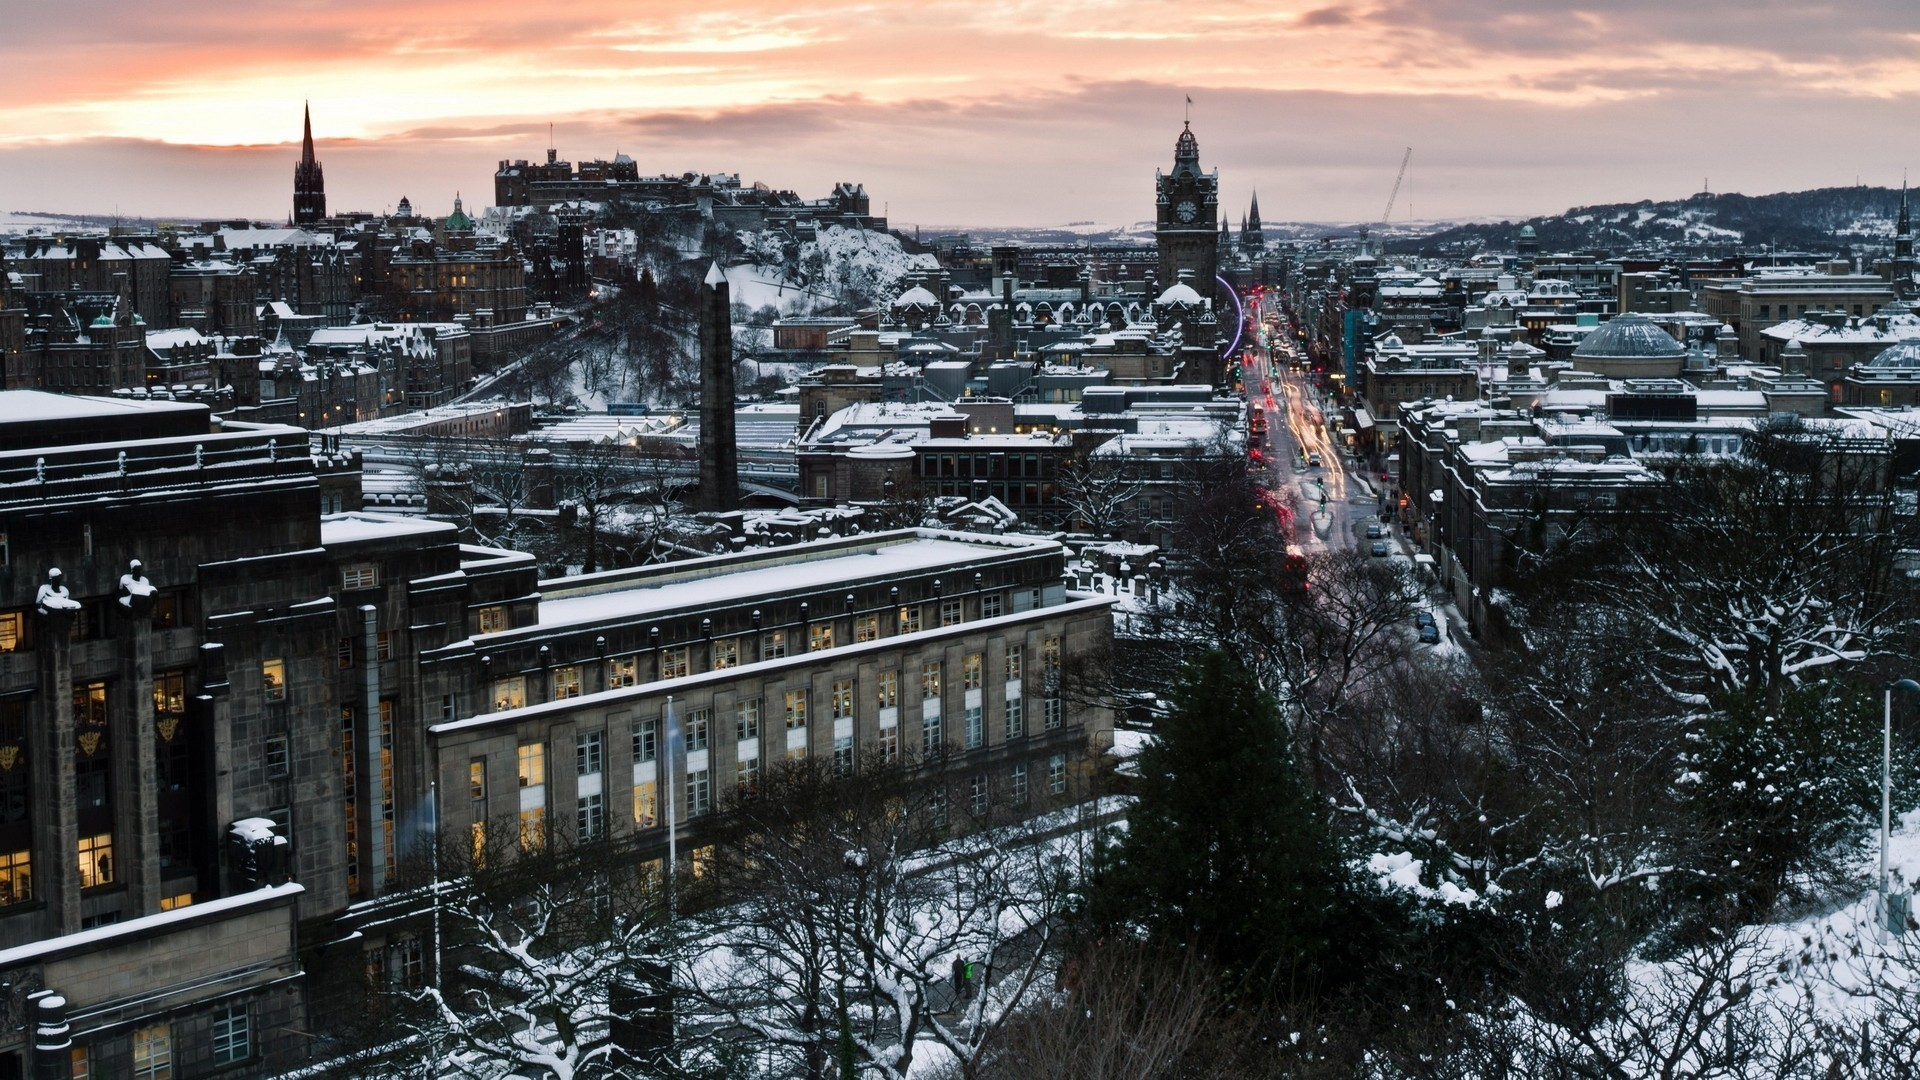 Wallpaper edinburgh, scotland, winter, snow, city